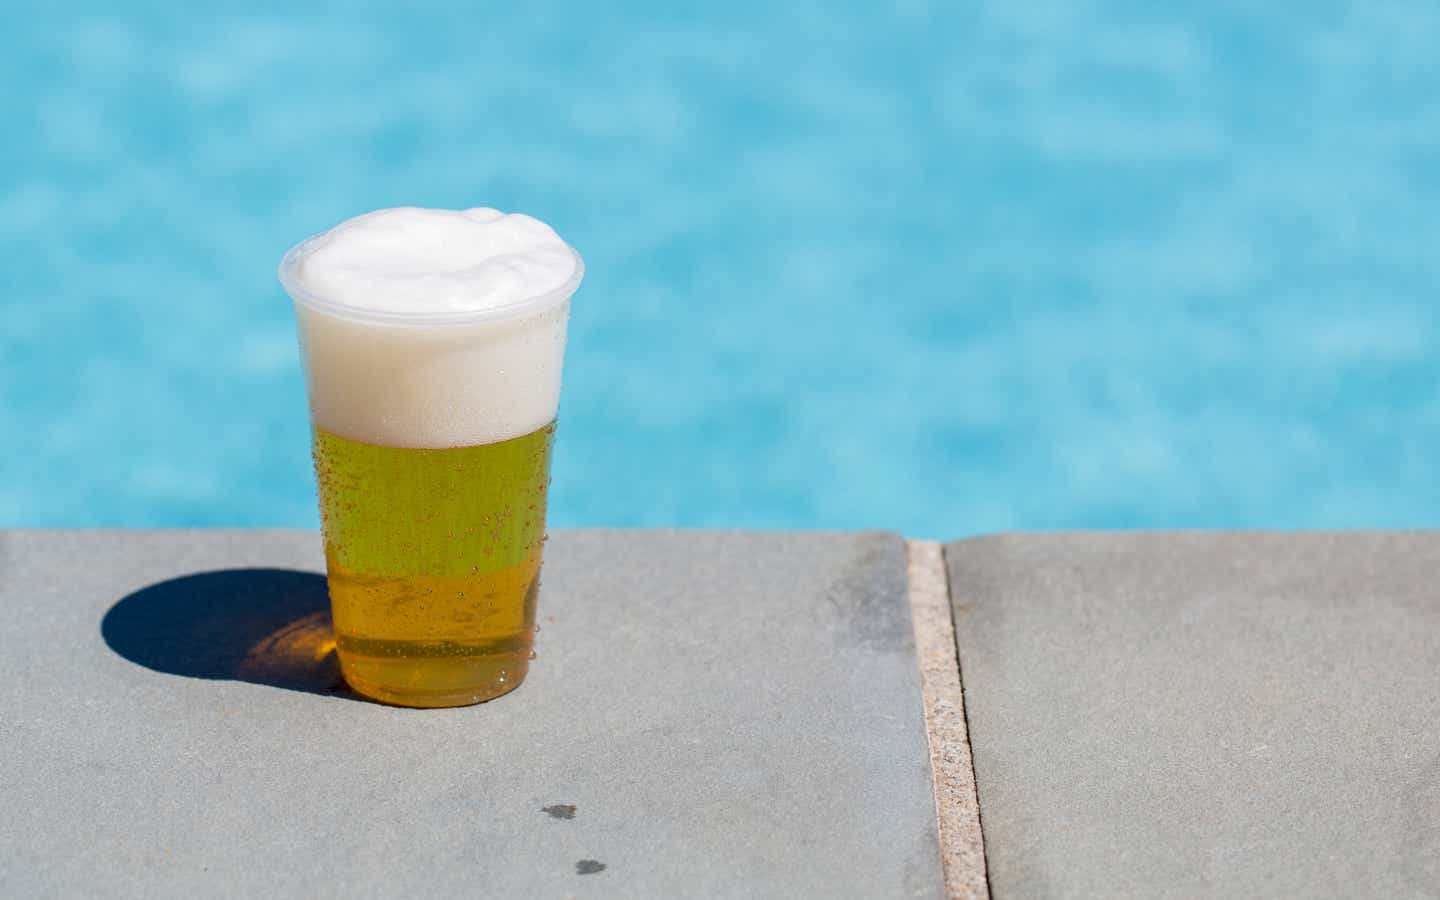 Glass of beer by an outdoor pool.